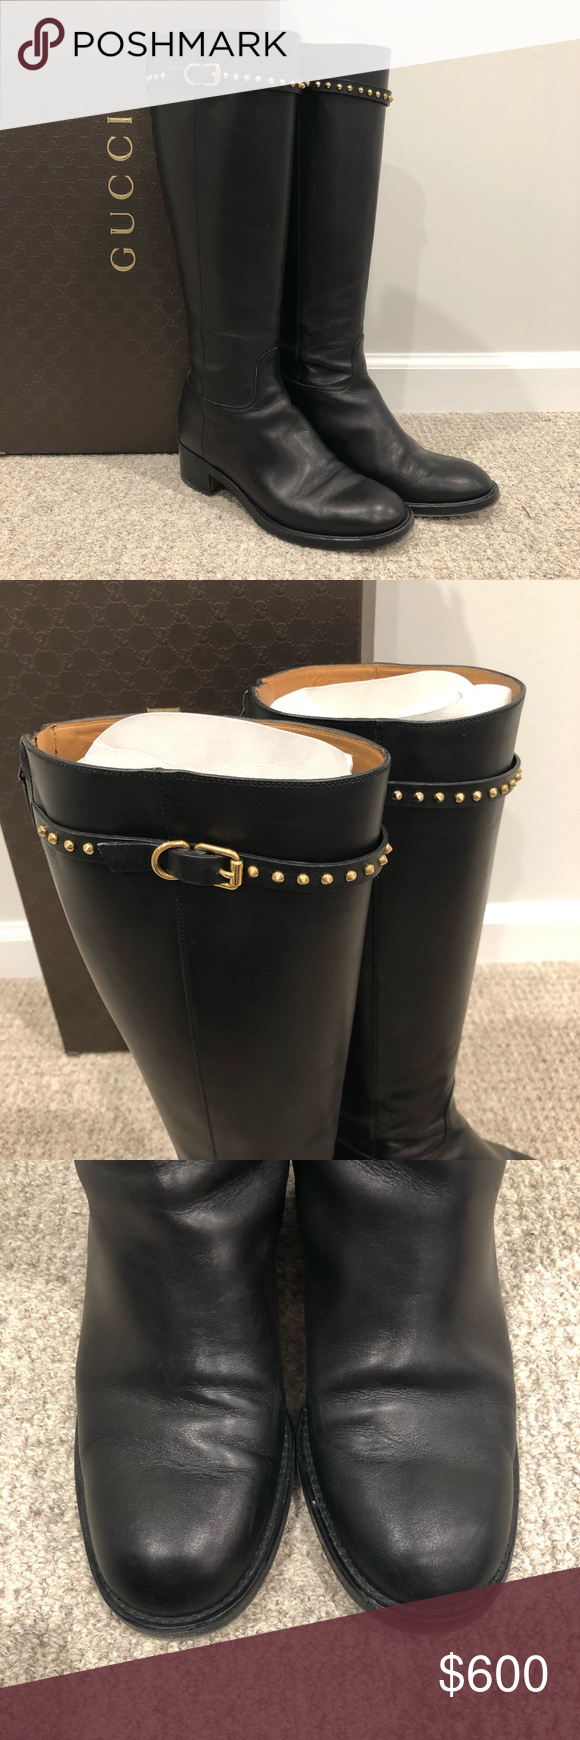 8cba9b45e86 Gucci Cirano Lux Nero Black Studded Tall Boots 40 Great condition! Hardly  worn! Shows